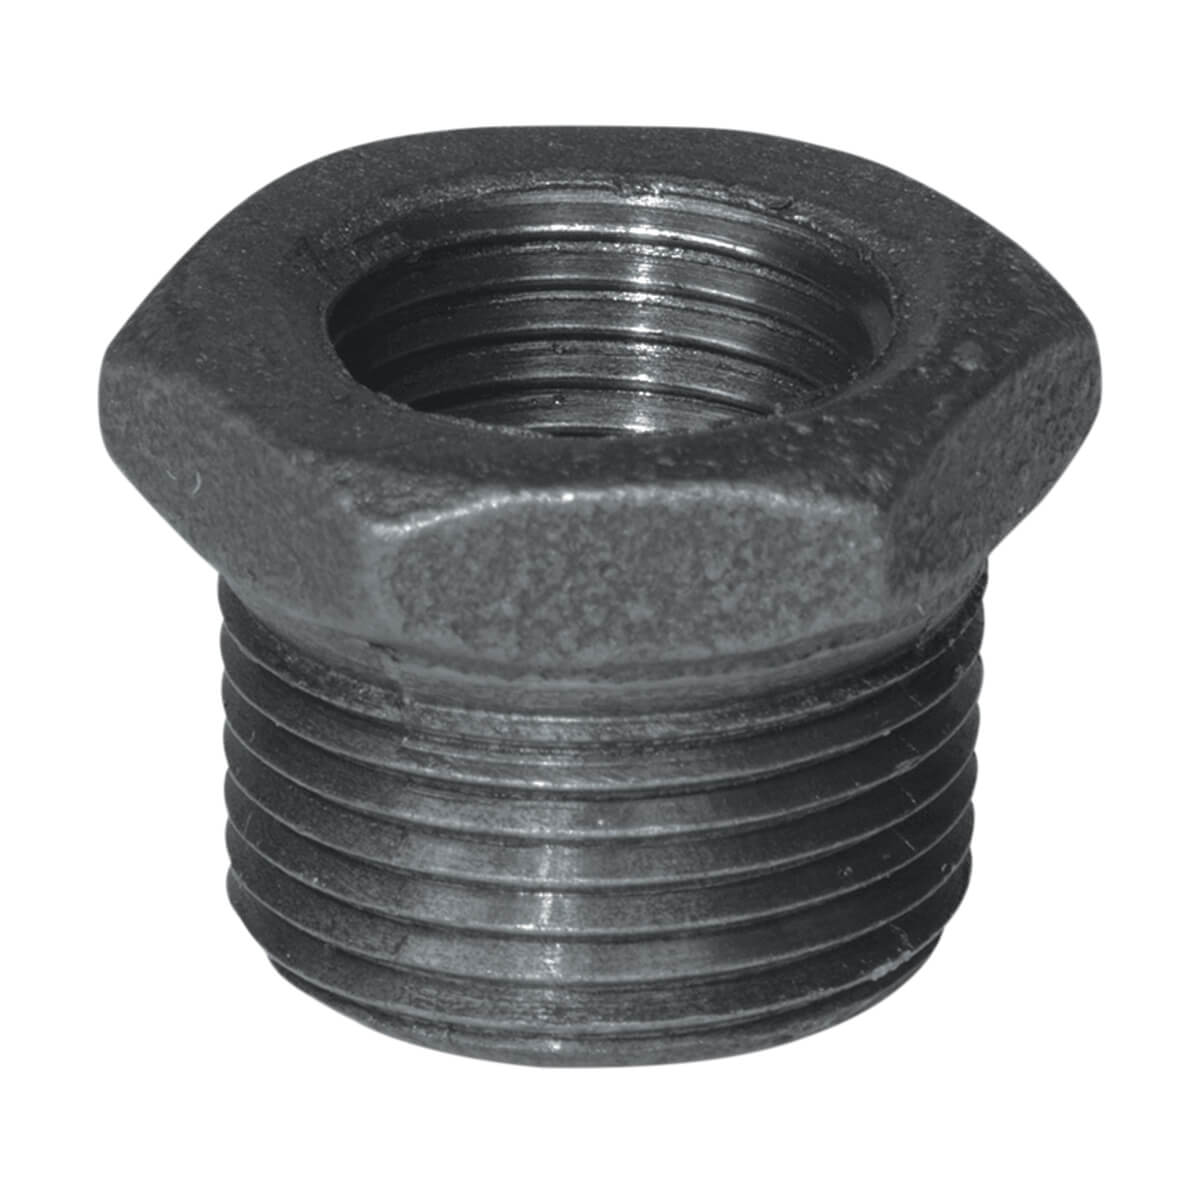 Fitting Black Iron Hex Bushing - 3/4-in x 3/8-in